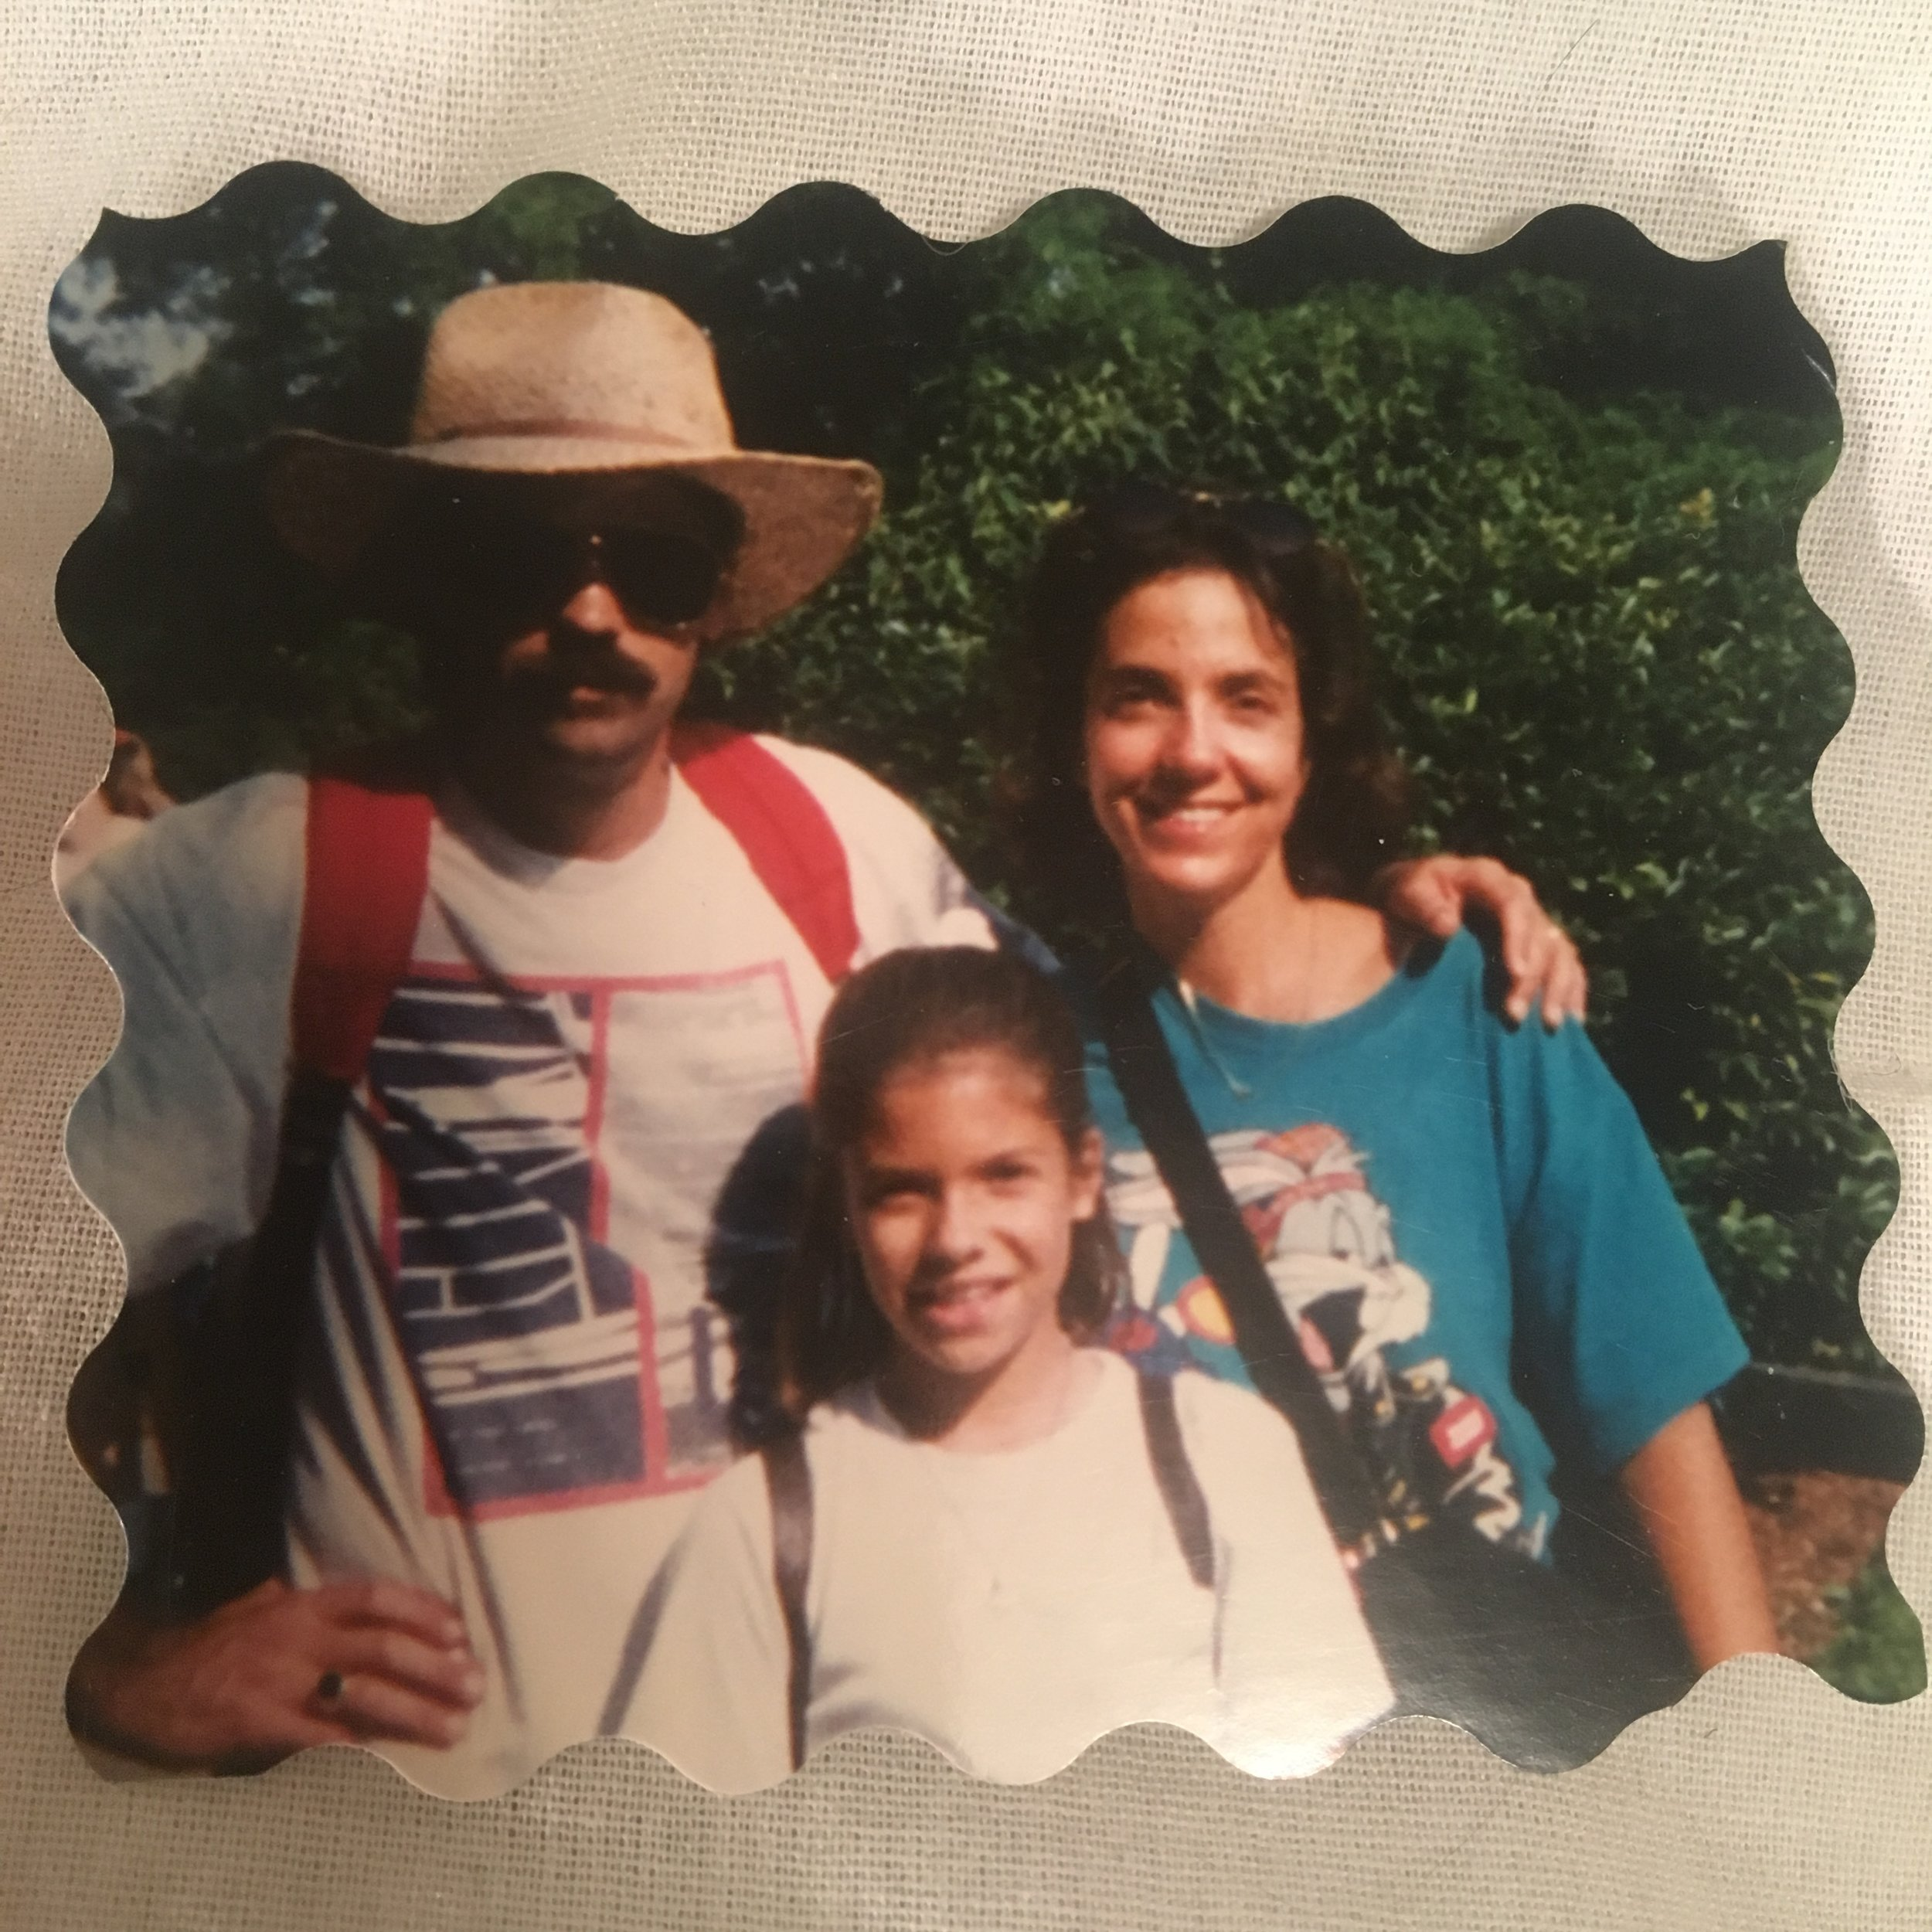 My parents and I in the '90s.